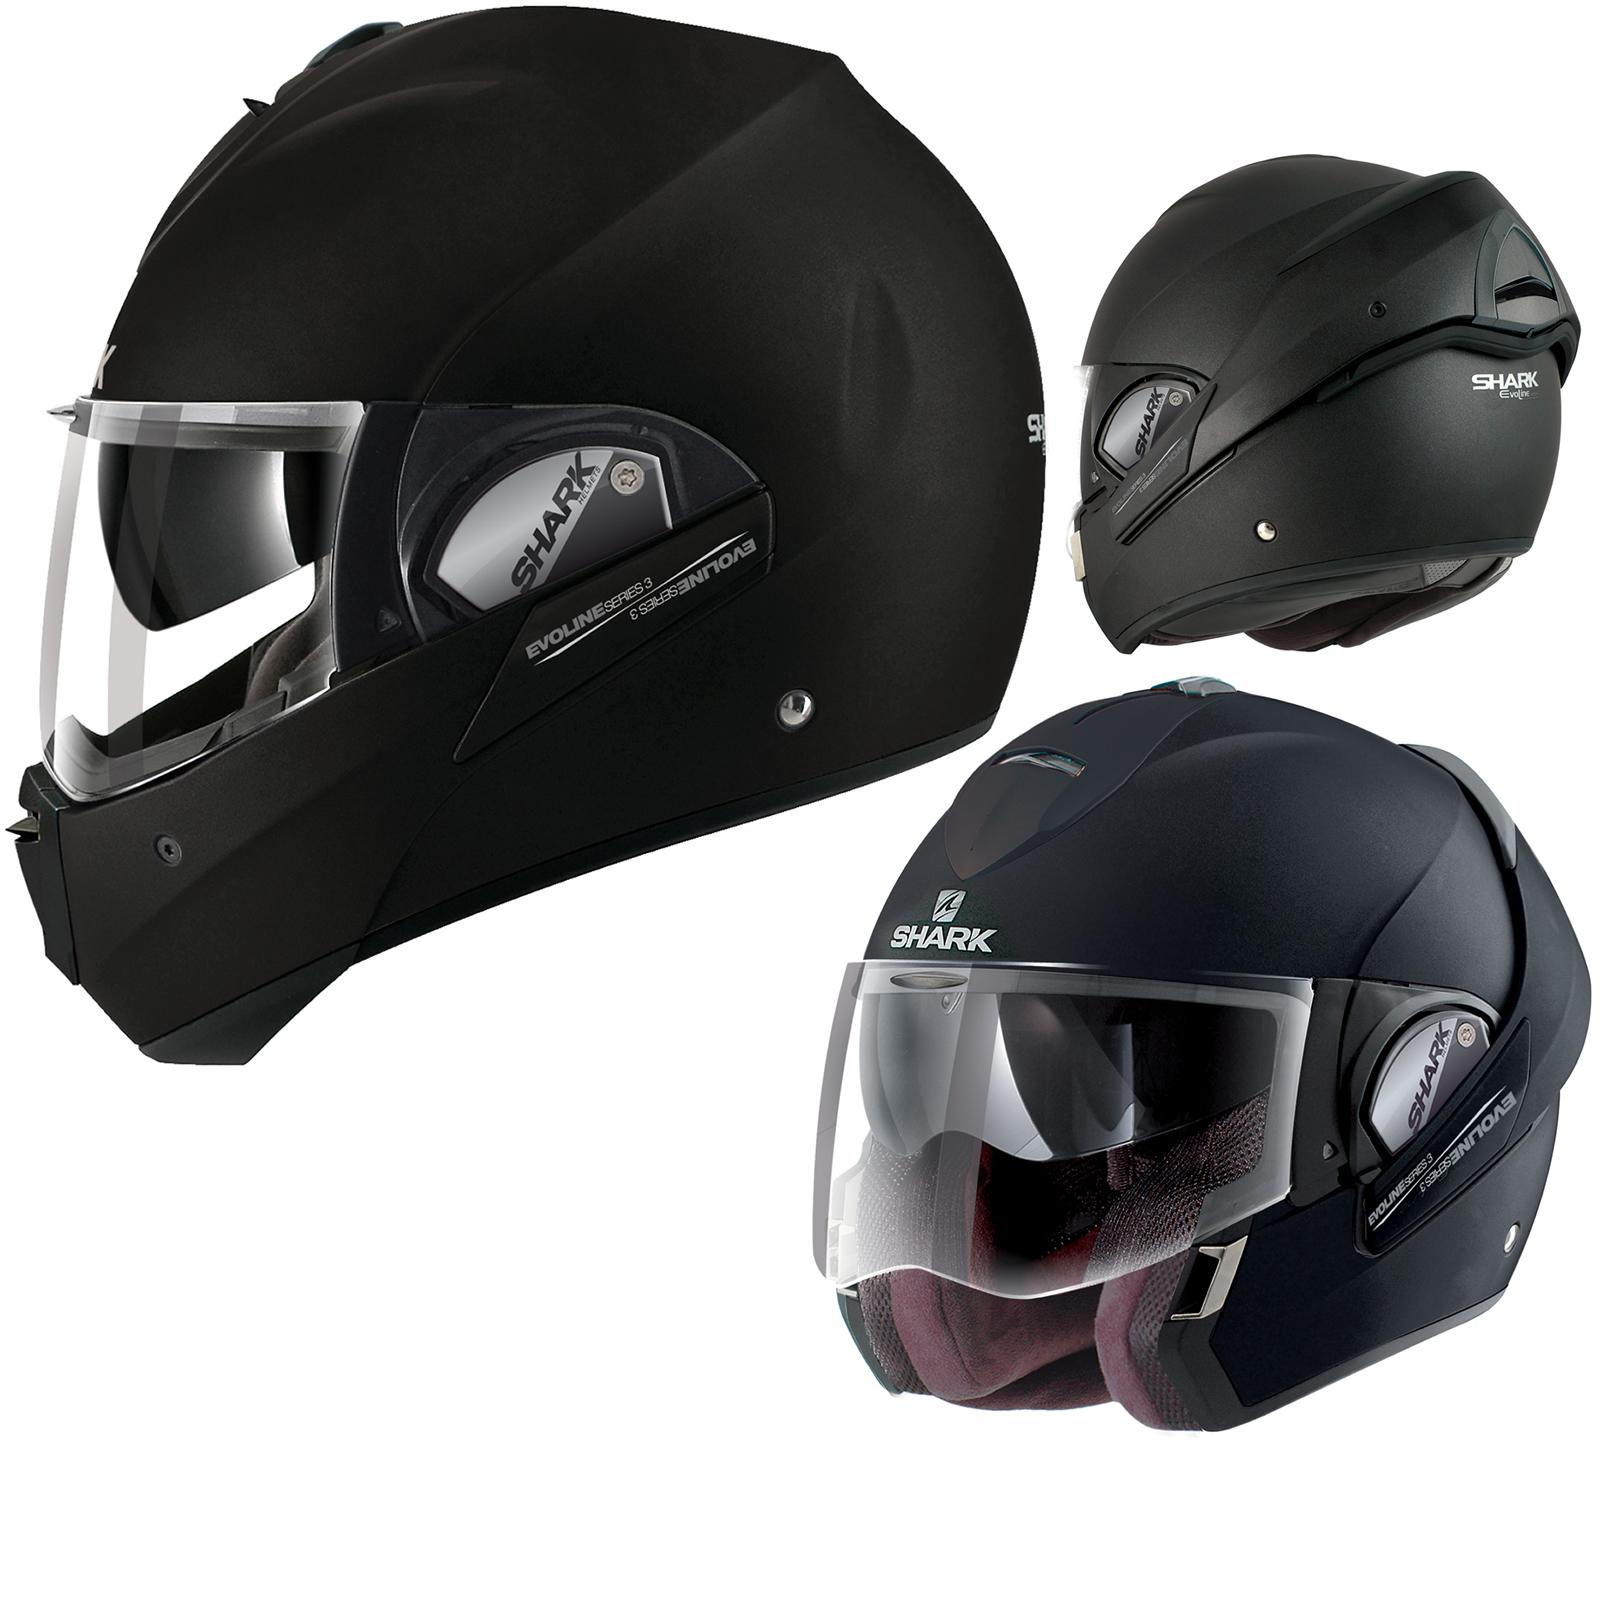 shark evoline 3 fusion ece helmet blank matt black online motorcycle accessories australia scm. Black Bedroom Furniture Sets. Home Design Ideas